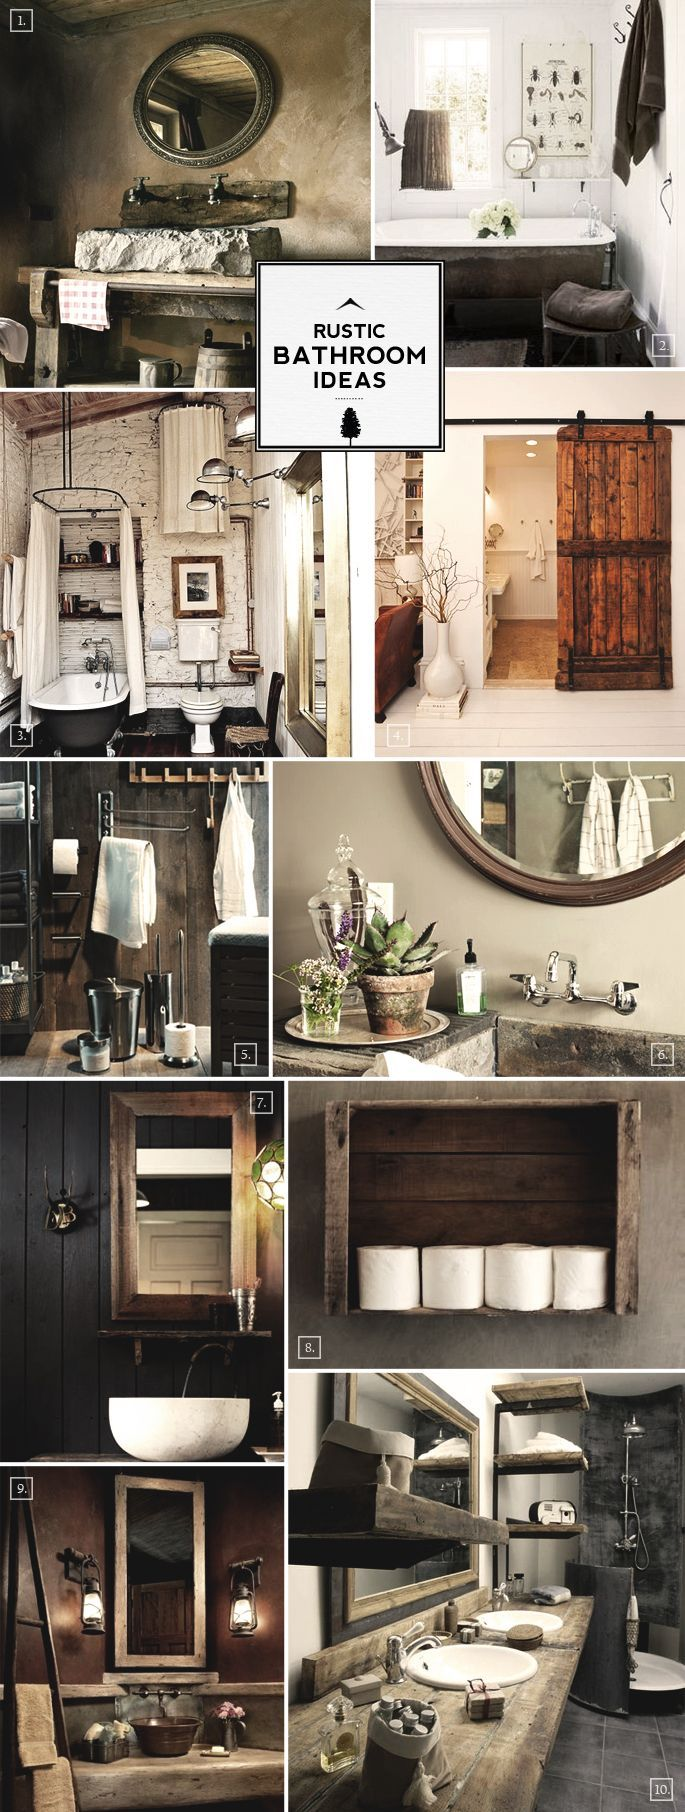 60 best beautiful bathrooms images on pinterest room home and rustic bathroom i like the barn door and the brick walls rustic bathroom ideas